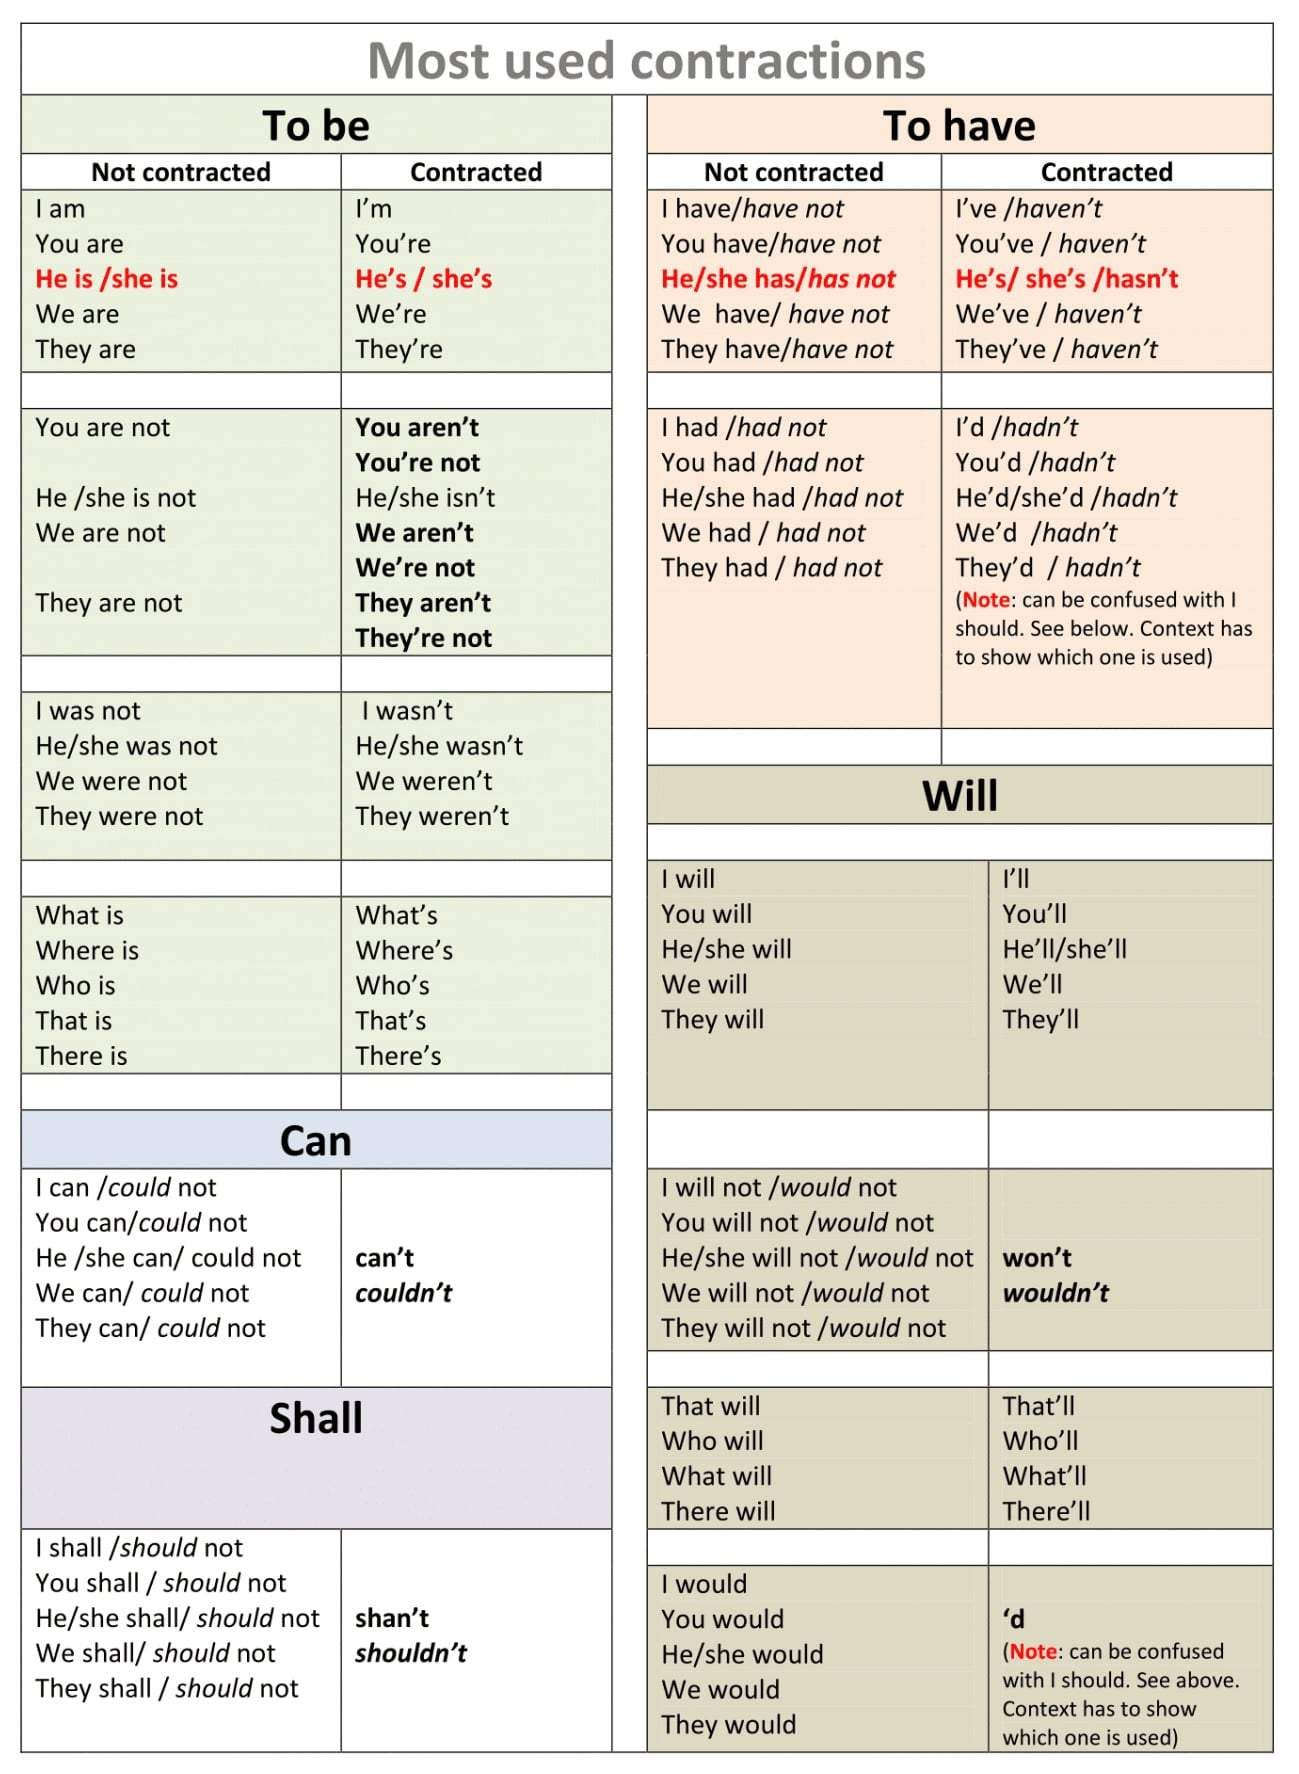 Useful List Of Informal Contractions In English